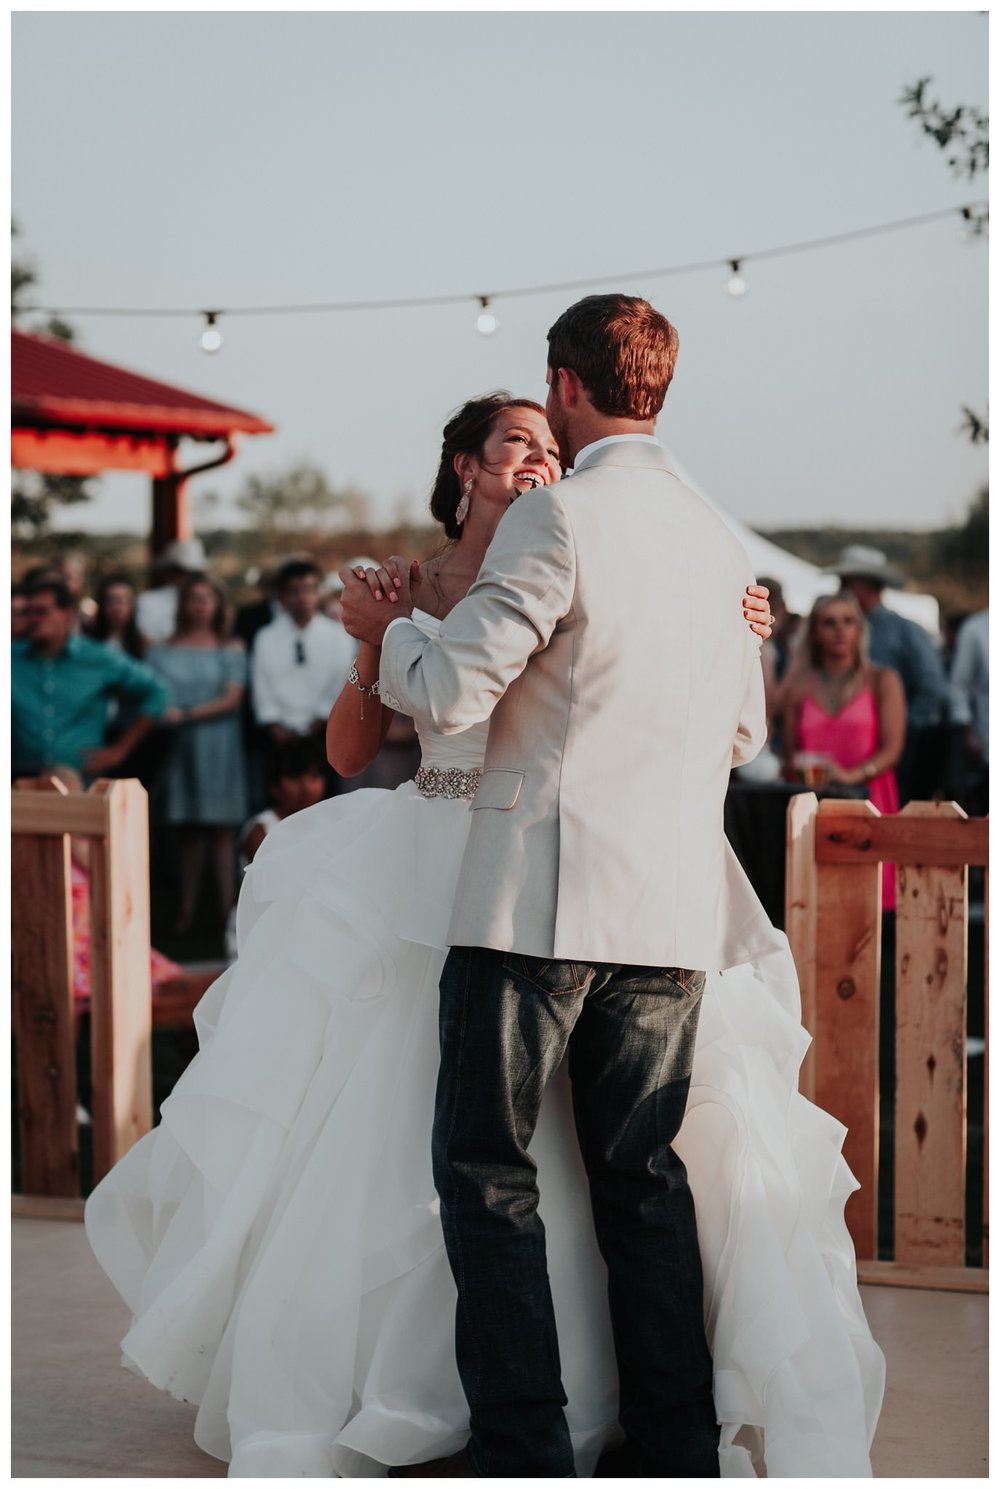 Whimsical Ranch West Texas Wedding - DIY Farm Wedding-2743.jpg